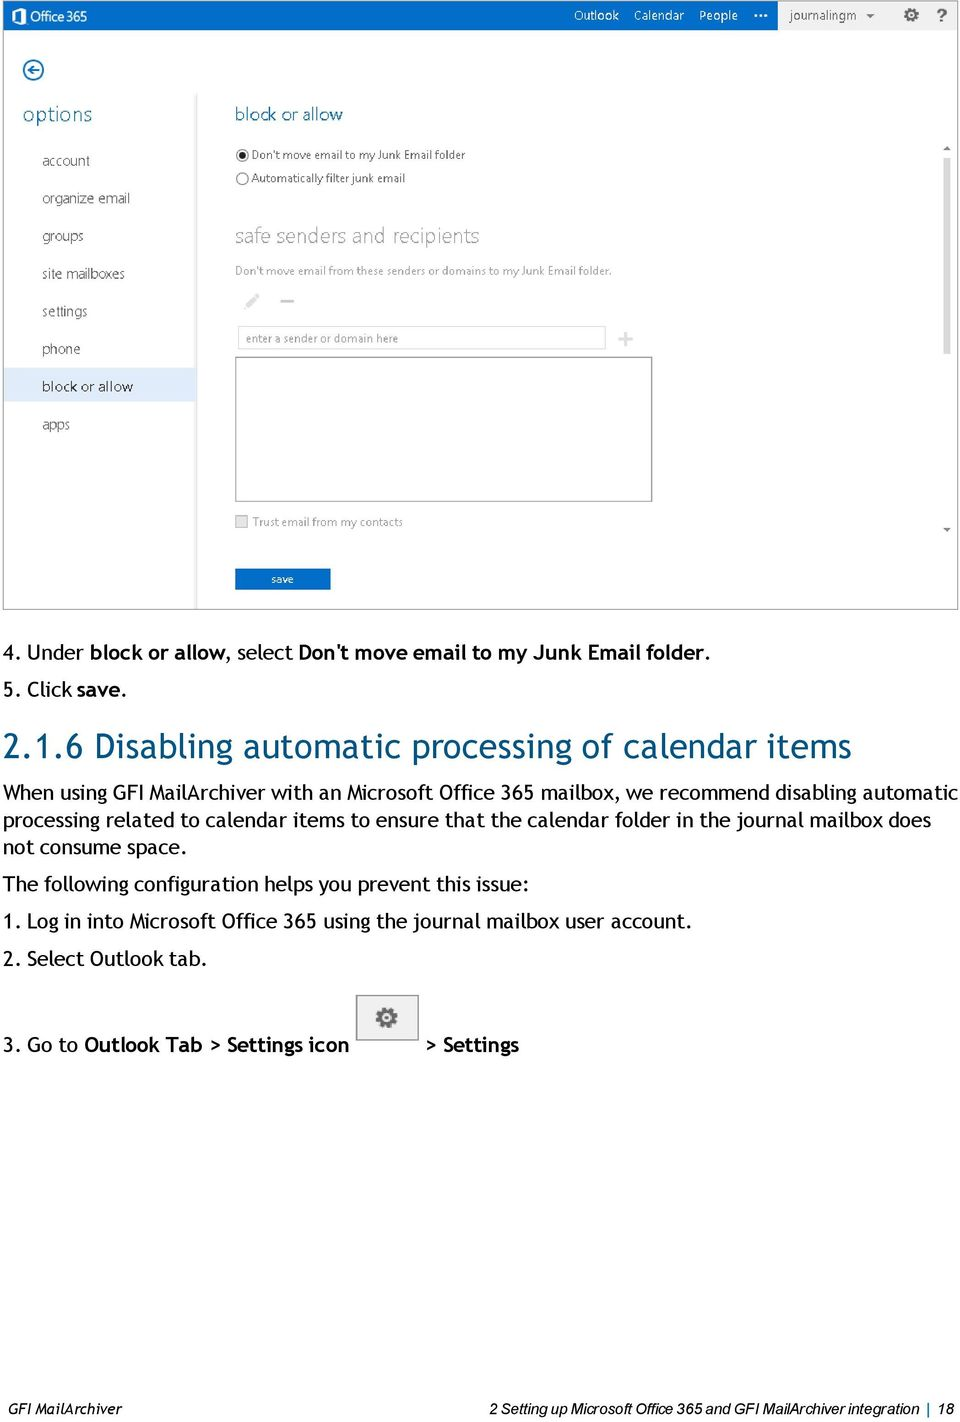 related to calendar items to ensure that the calendar folder in the journal mailbox does not consume space.